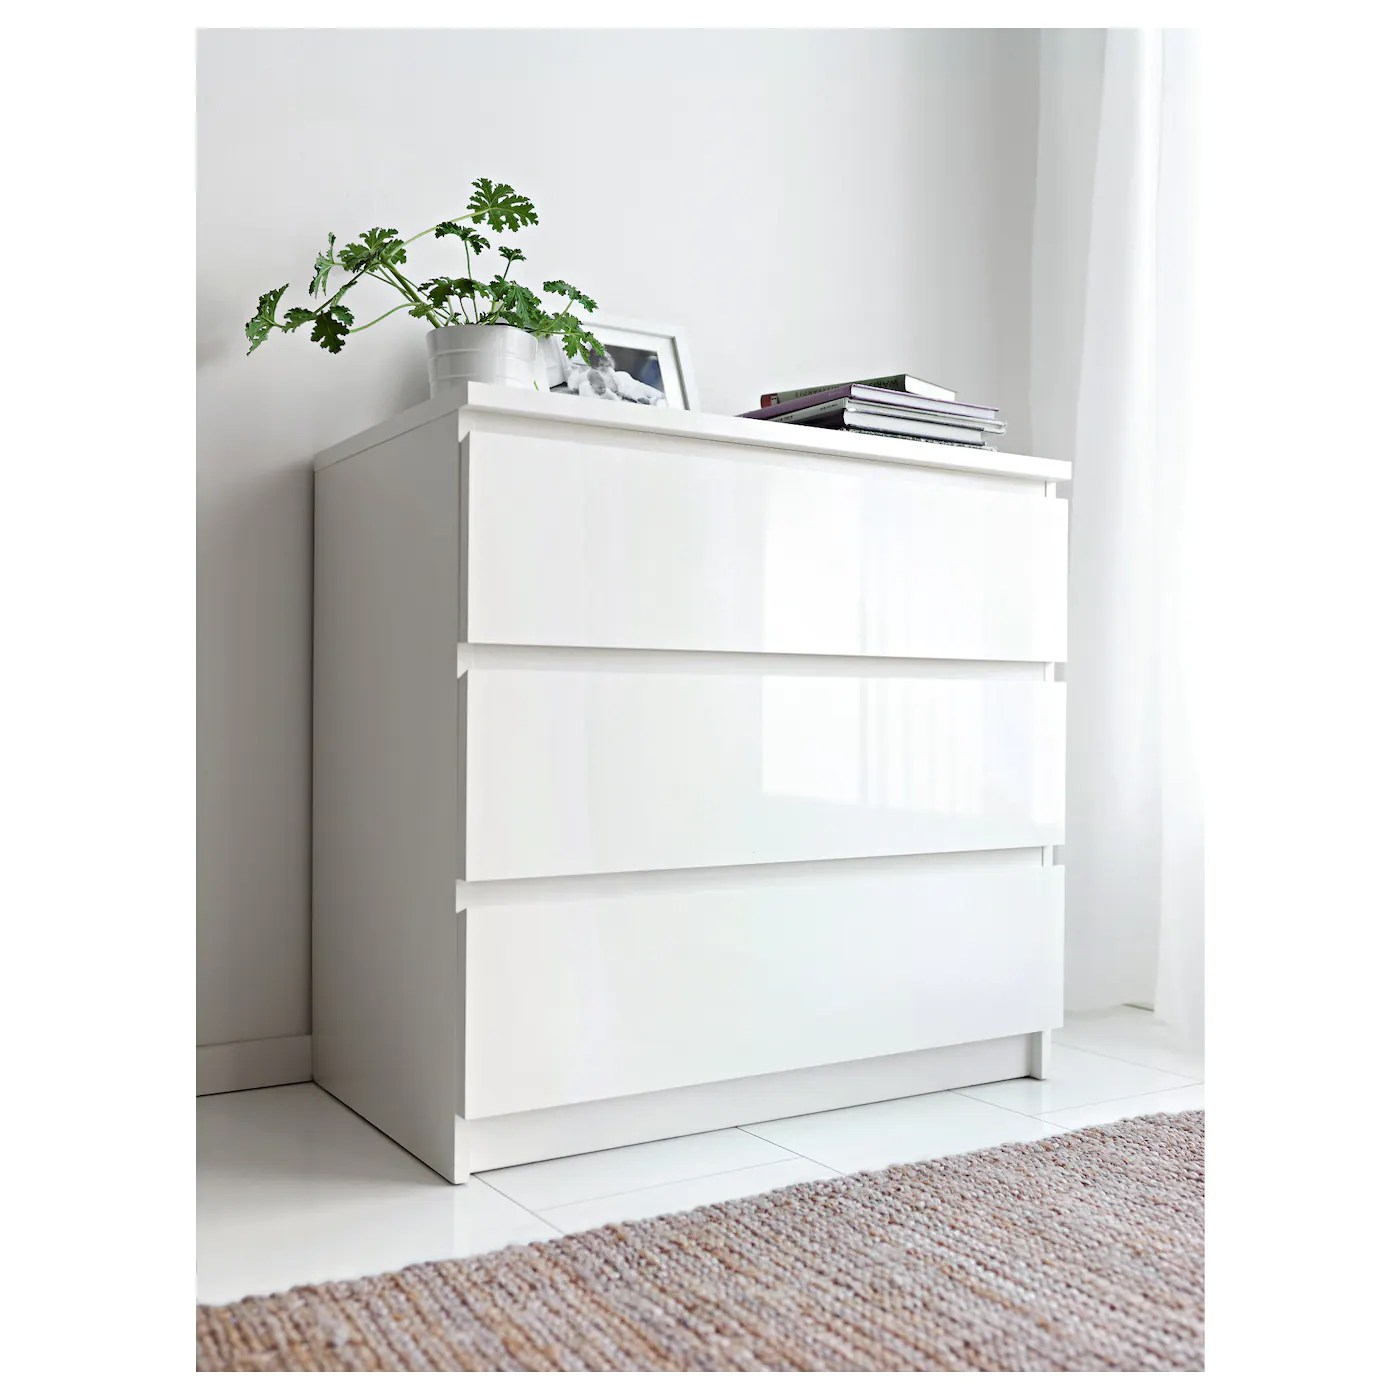 White Gloss Drawers Malm Chest Of 3 Drawers White High Gloss 80 X 78 Cm Ikea